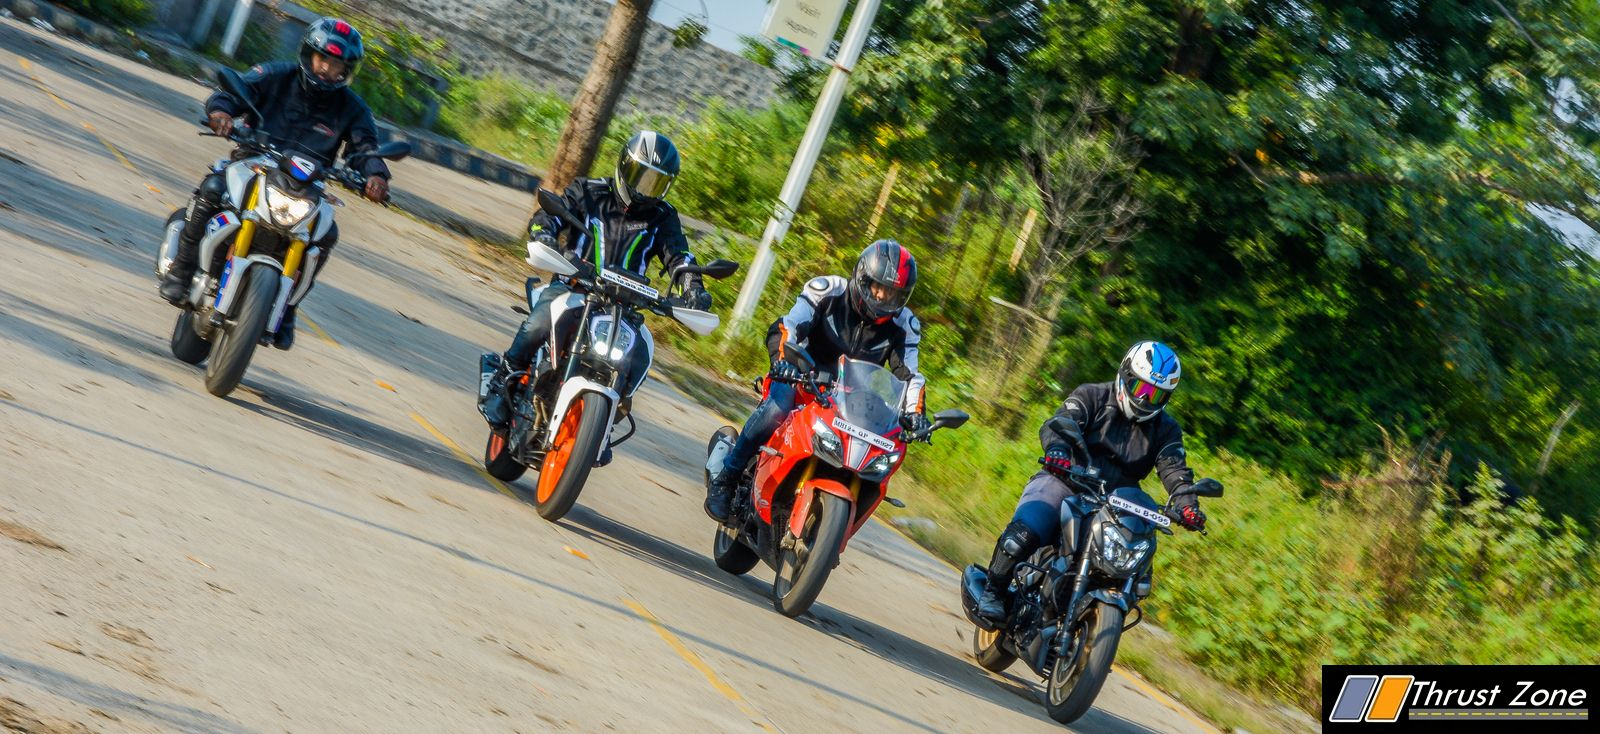 BMW G310R vs Duke 390 vs Dominar 400 vs Apache RR310 Review-27